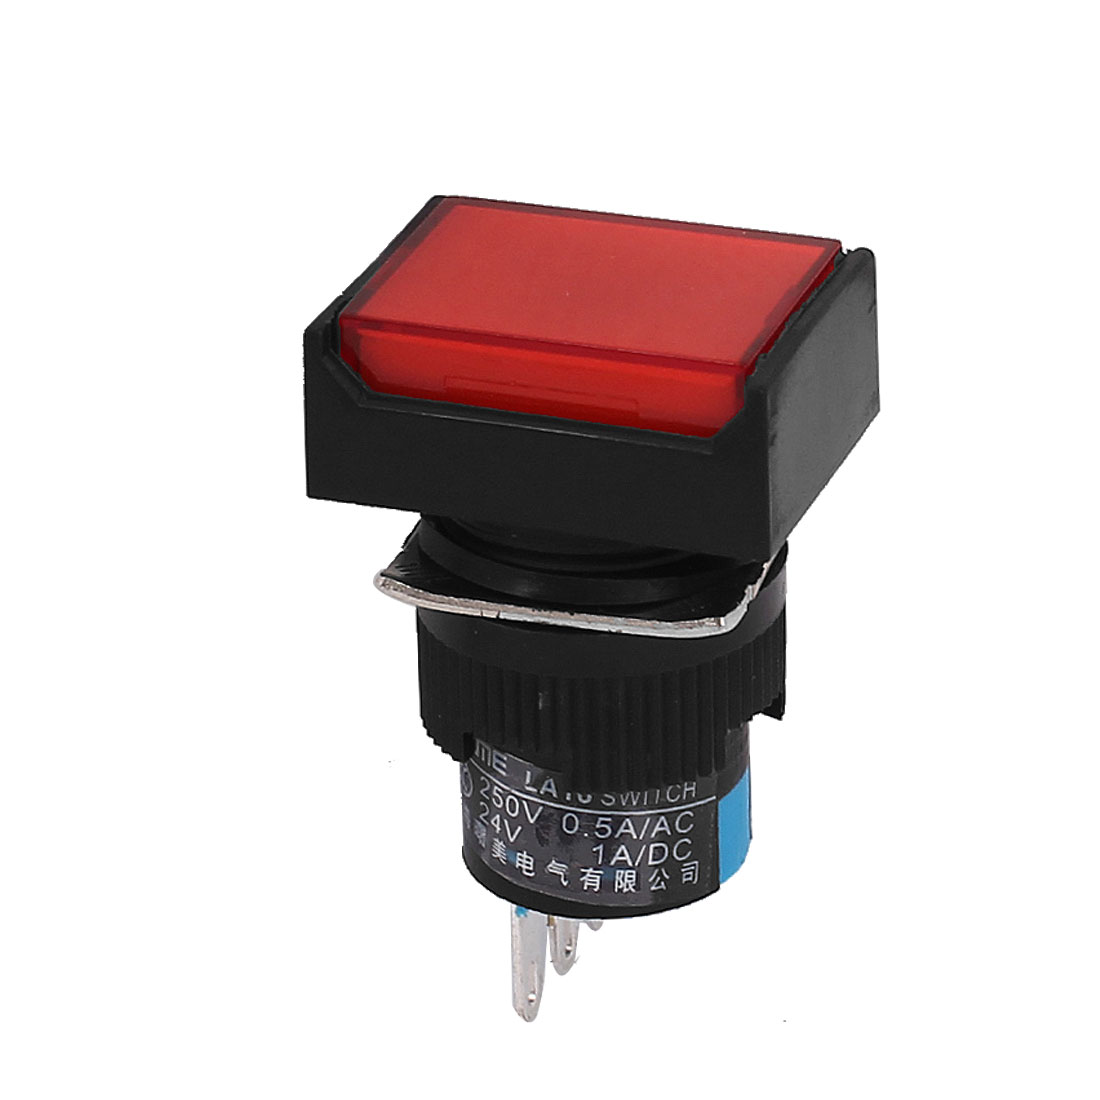 Self Locking NO NC AC 250V 0.5A 3 Pins Terminals Red Pushbutton Switch